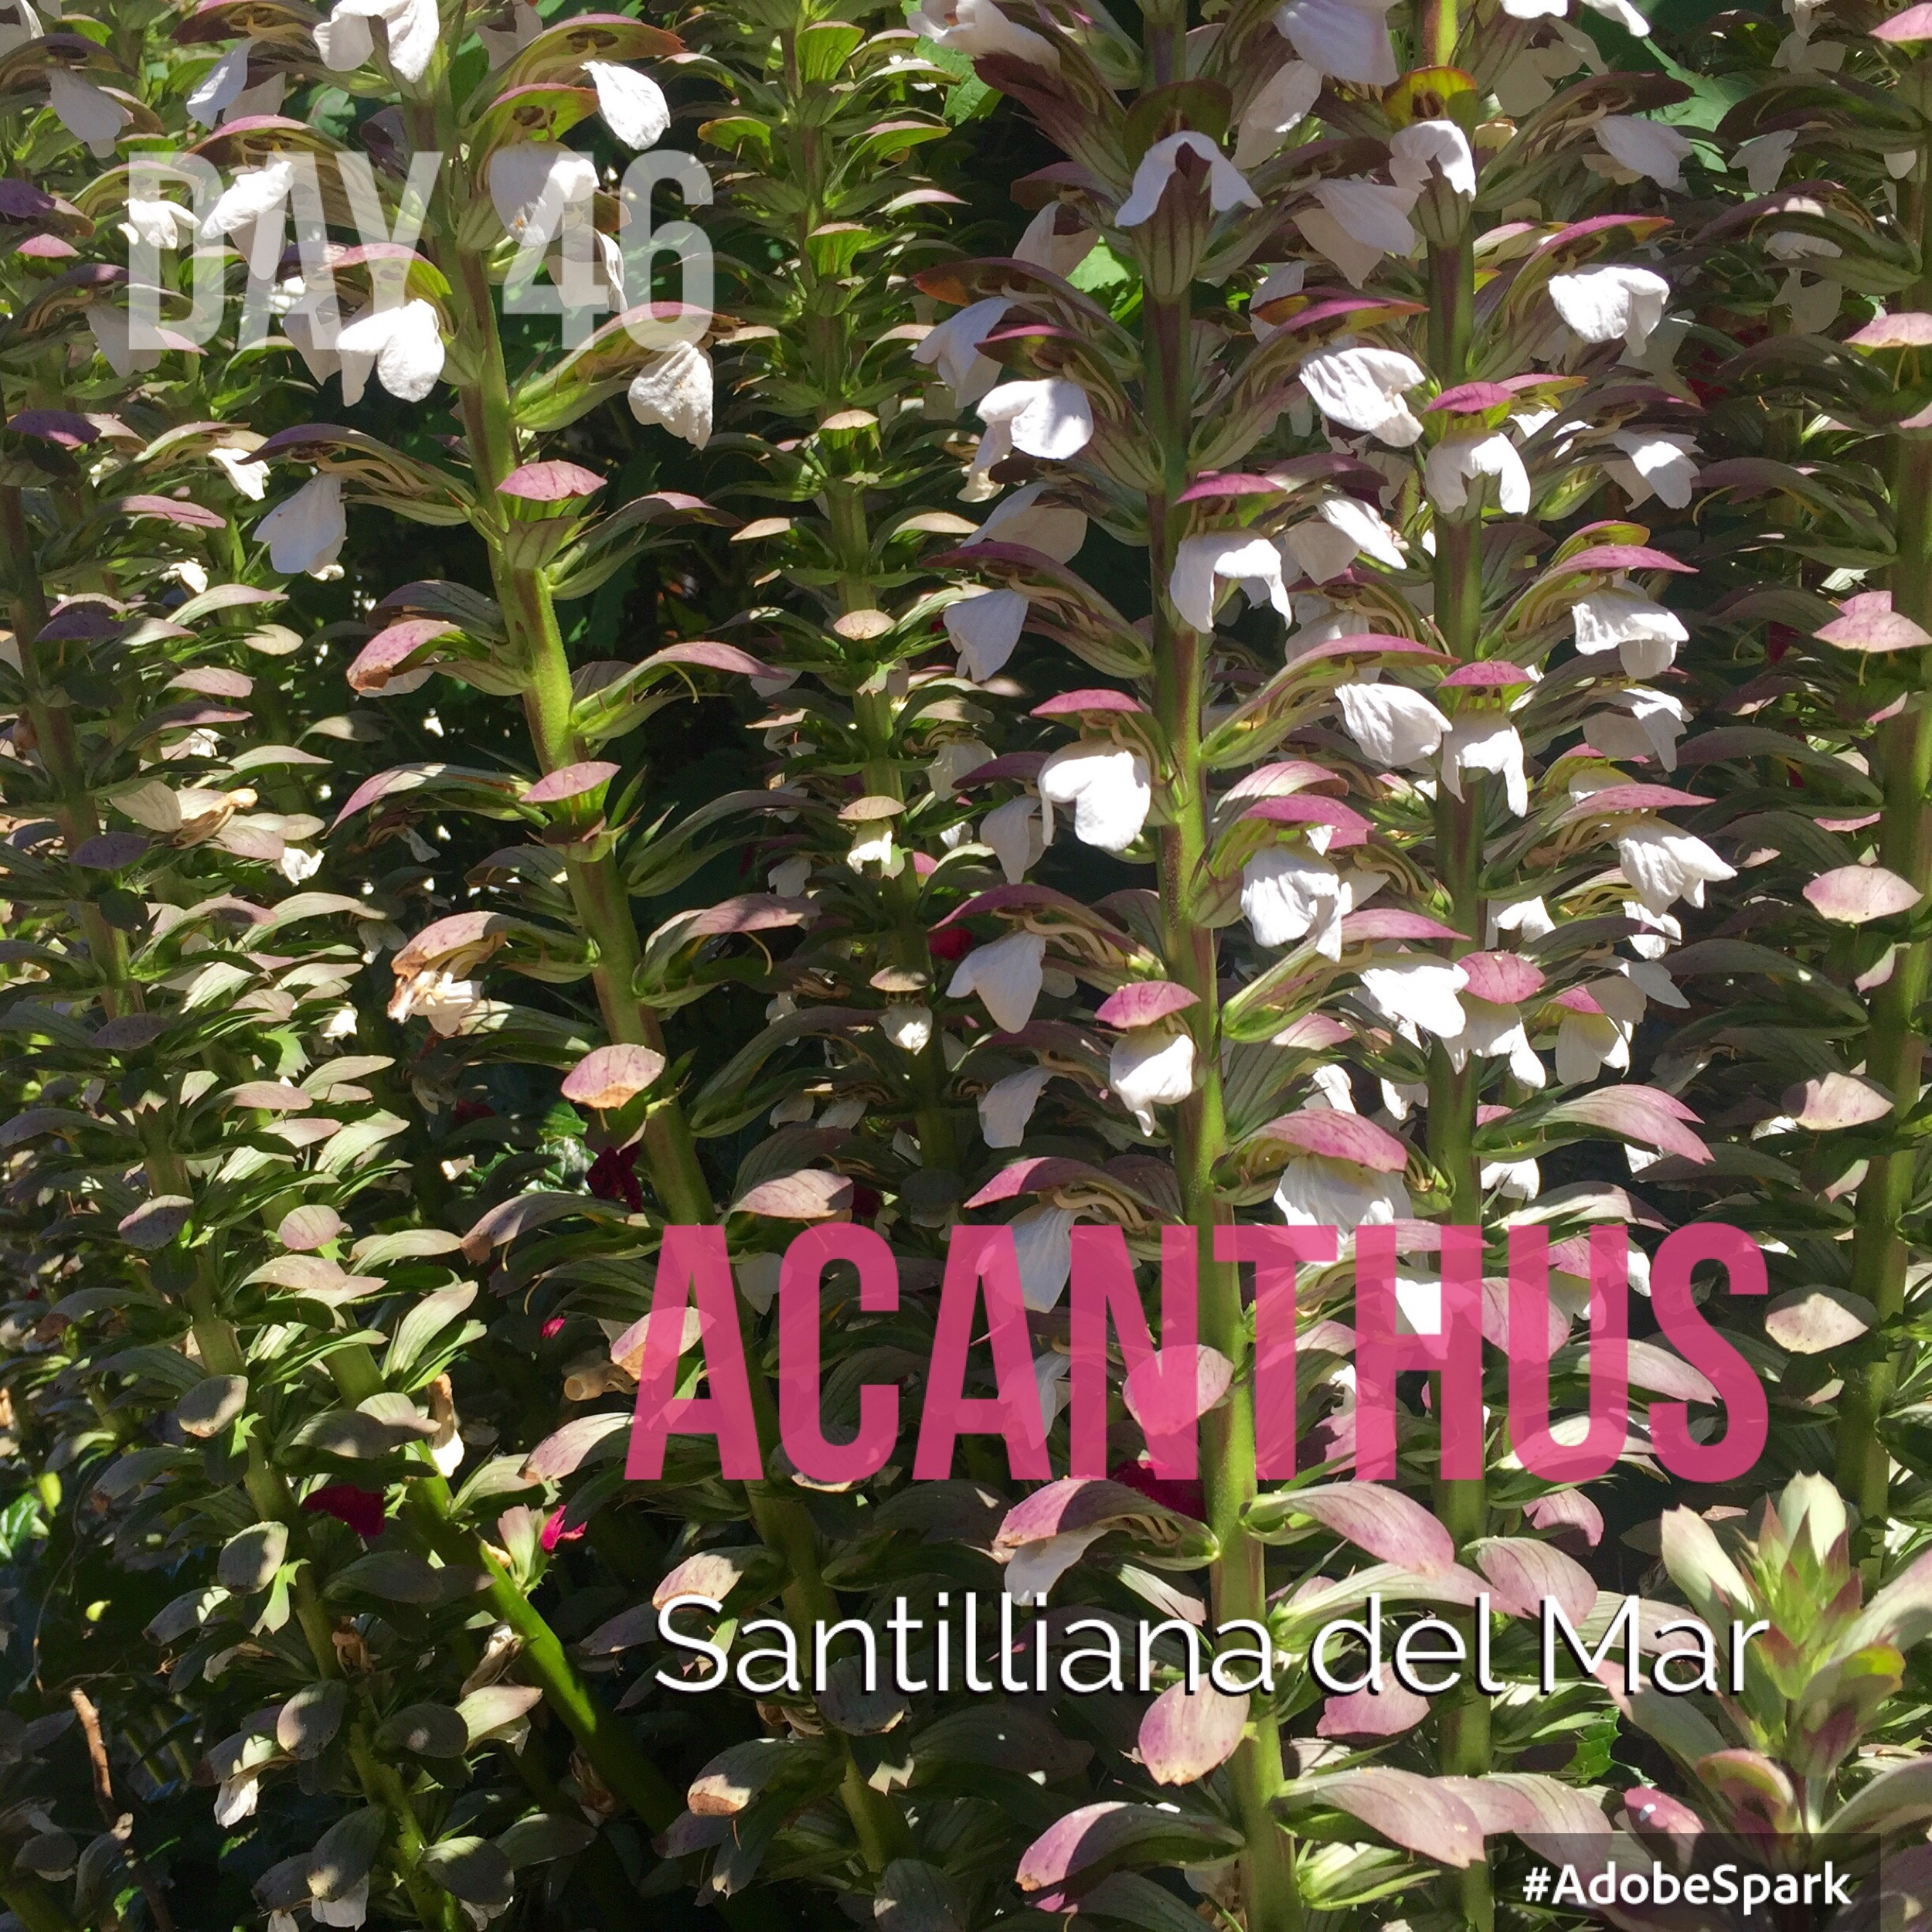 A lovely clump of acanthus en route